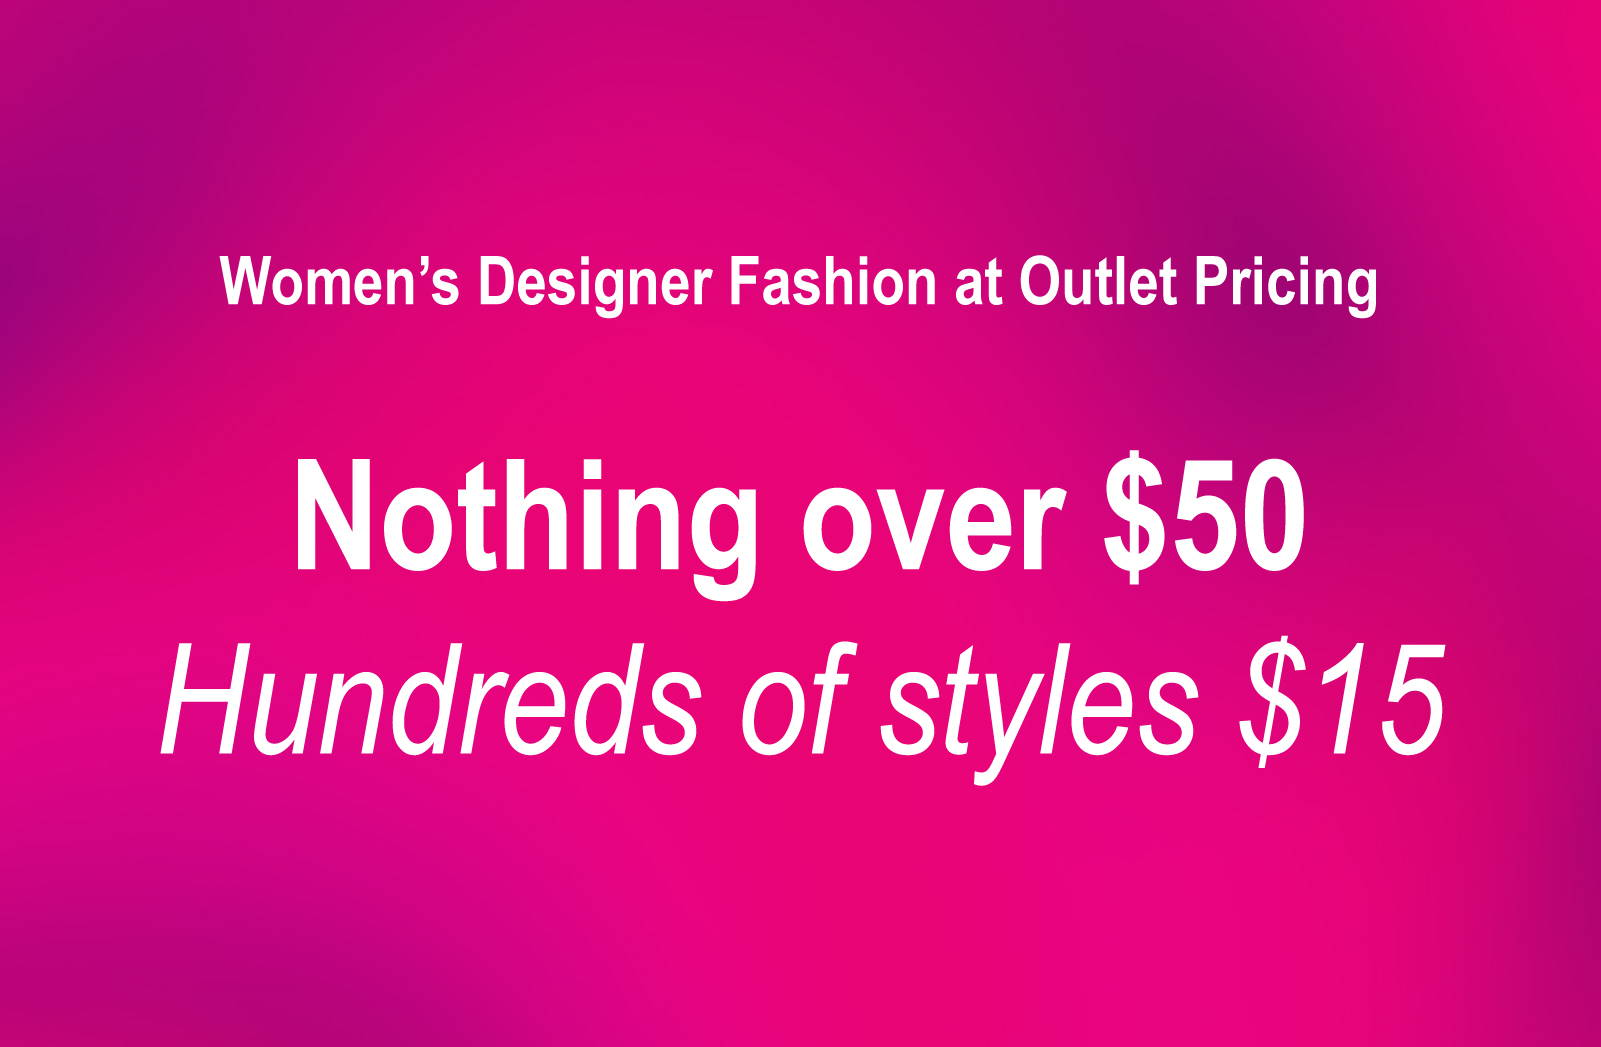 Women's Designer Fashion at Outlet Pricing